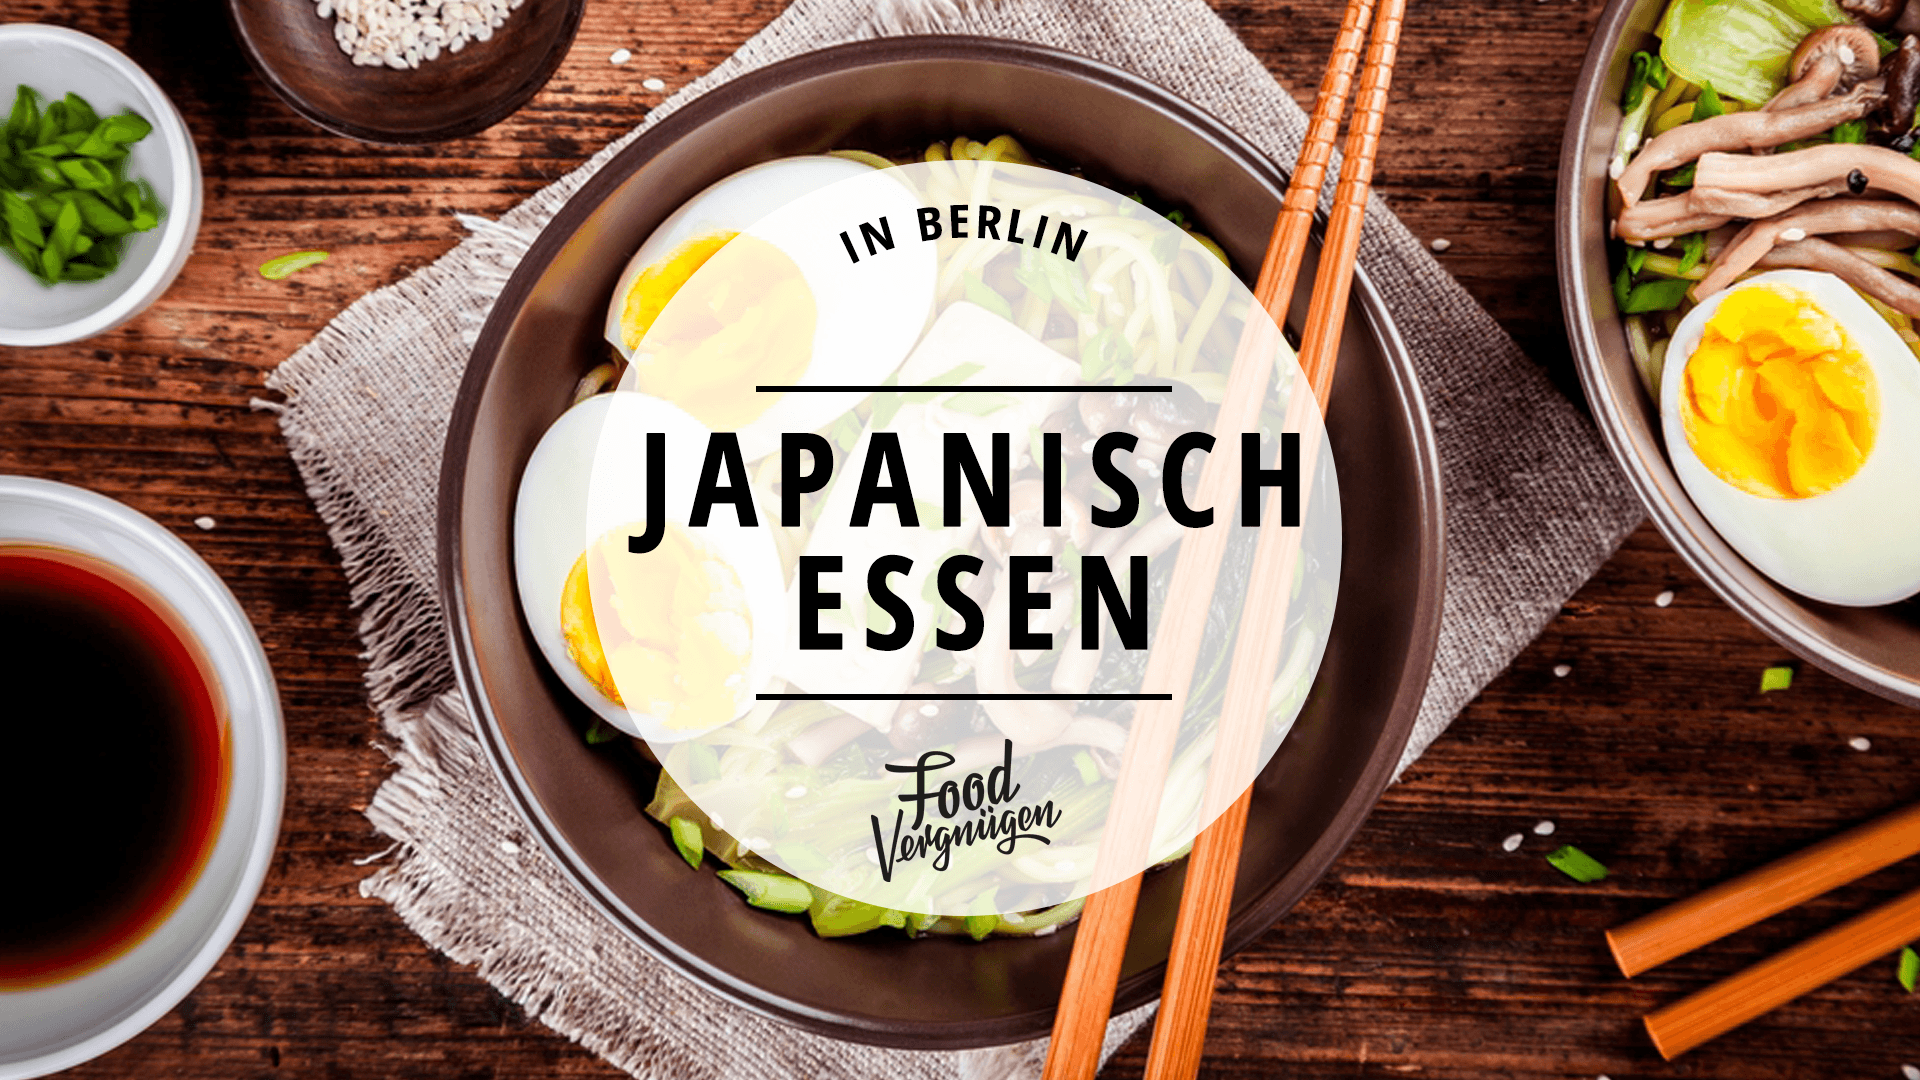 11 restaurants in berlin in denen ihr richtig gut japanisch essen k nnt mit vergn gen berlin. Black Bedroom Furniture Sets. Home Design Ideas